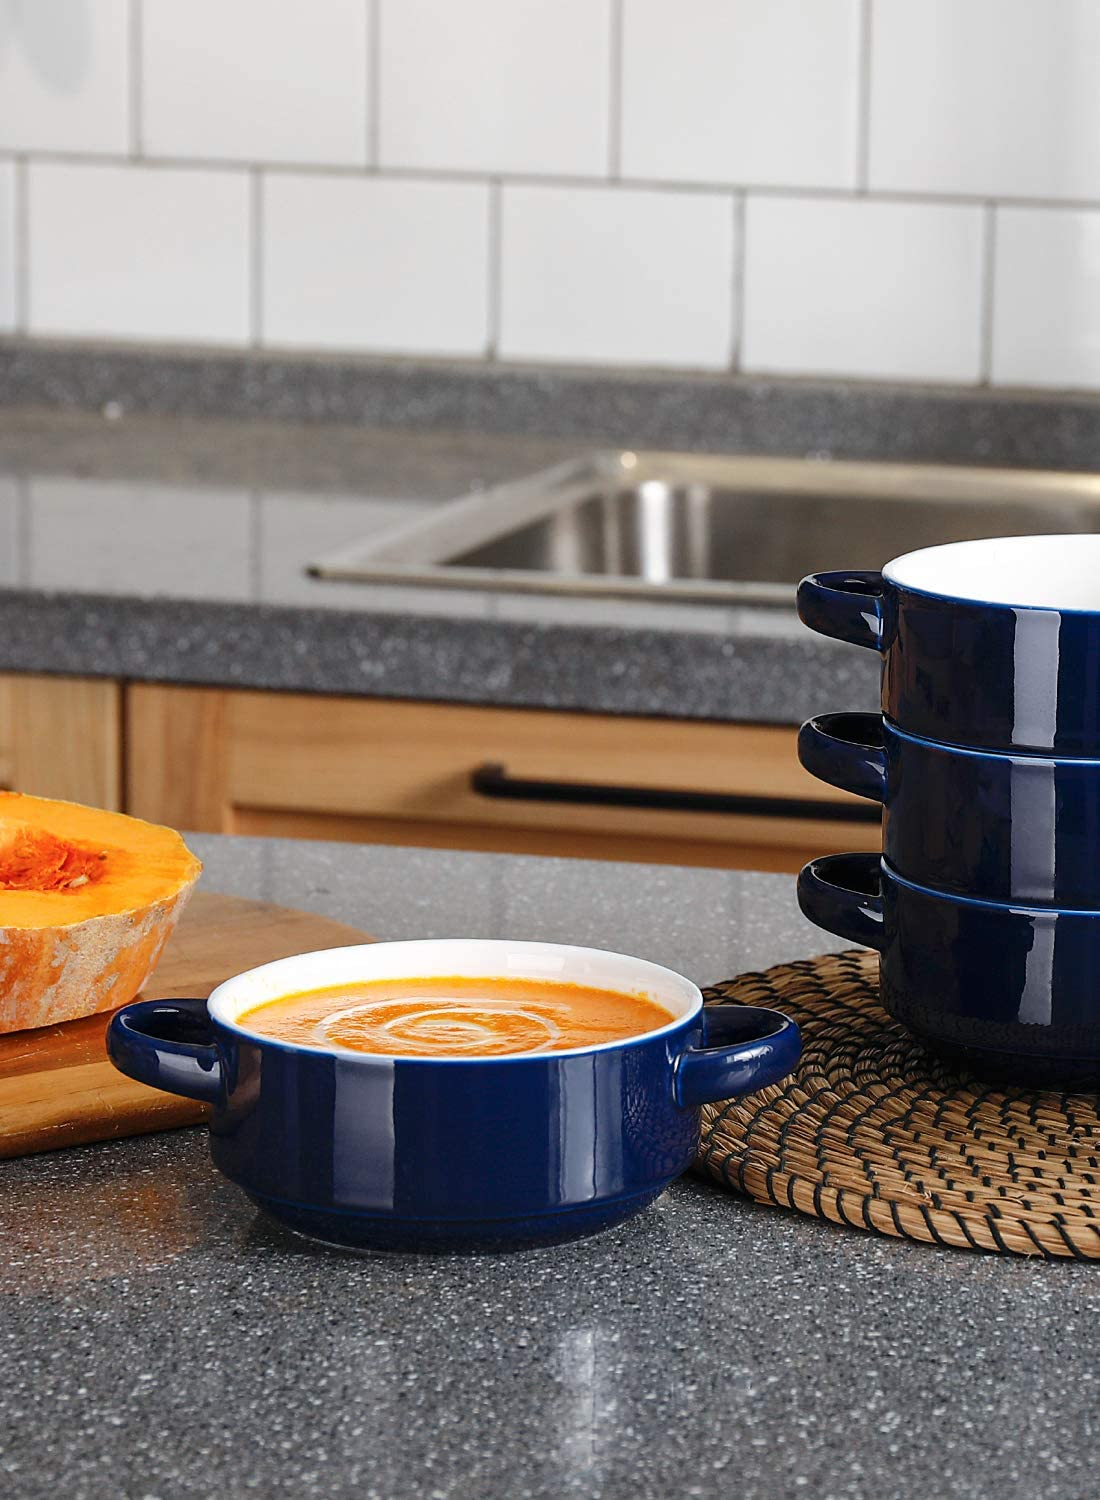 Black Sweese 108.412 Porcelain Bowls with Handles 20 Ounce for Soup Set of 4 Stew Cereal